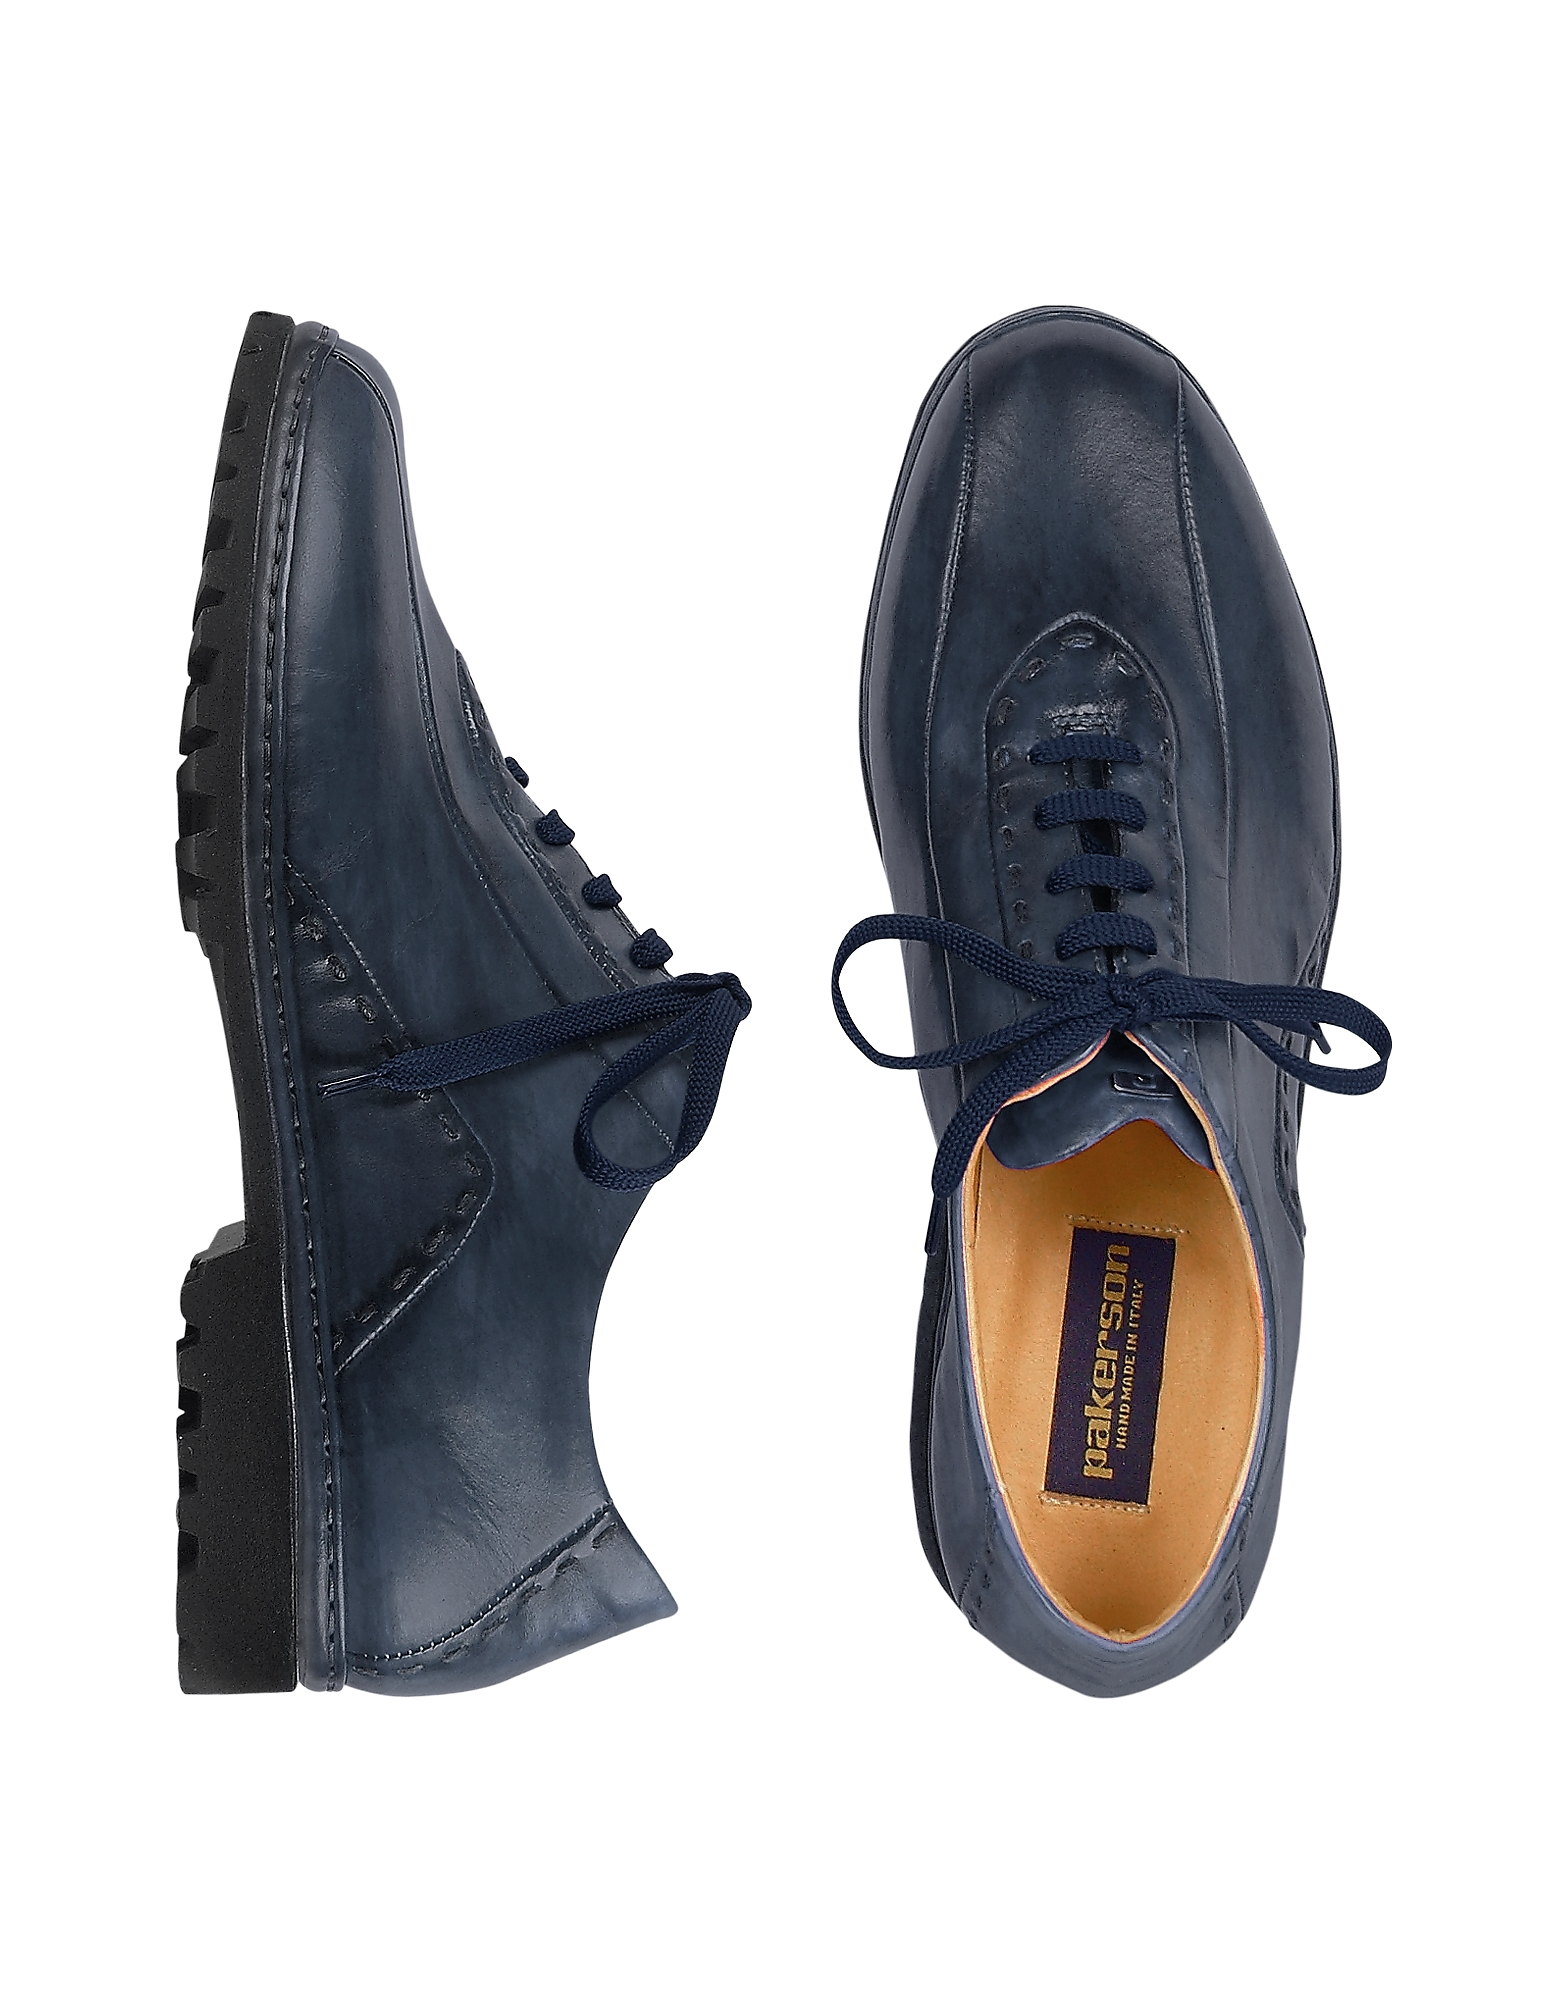 Pakerson Shoes, Blue Italian Handmade Leather Lace-up Shoes